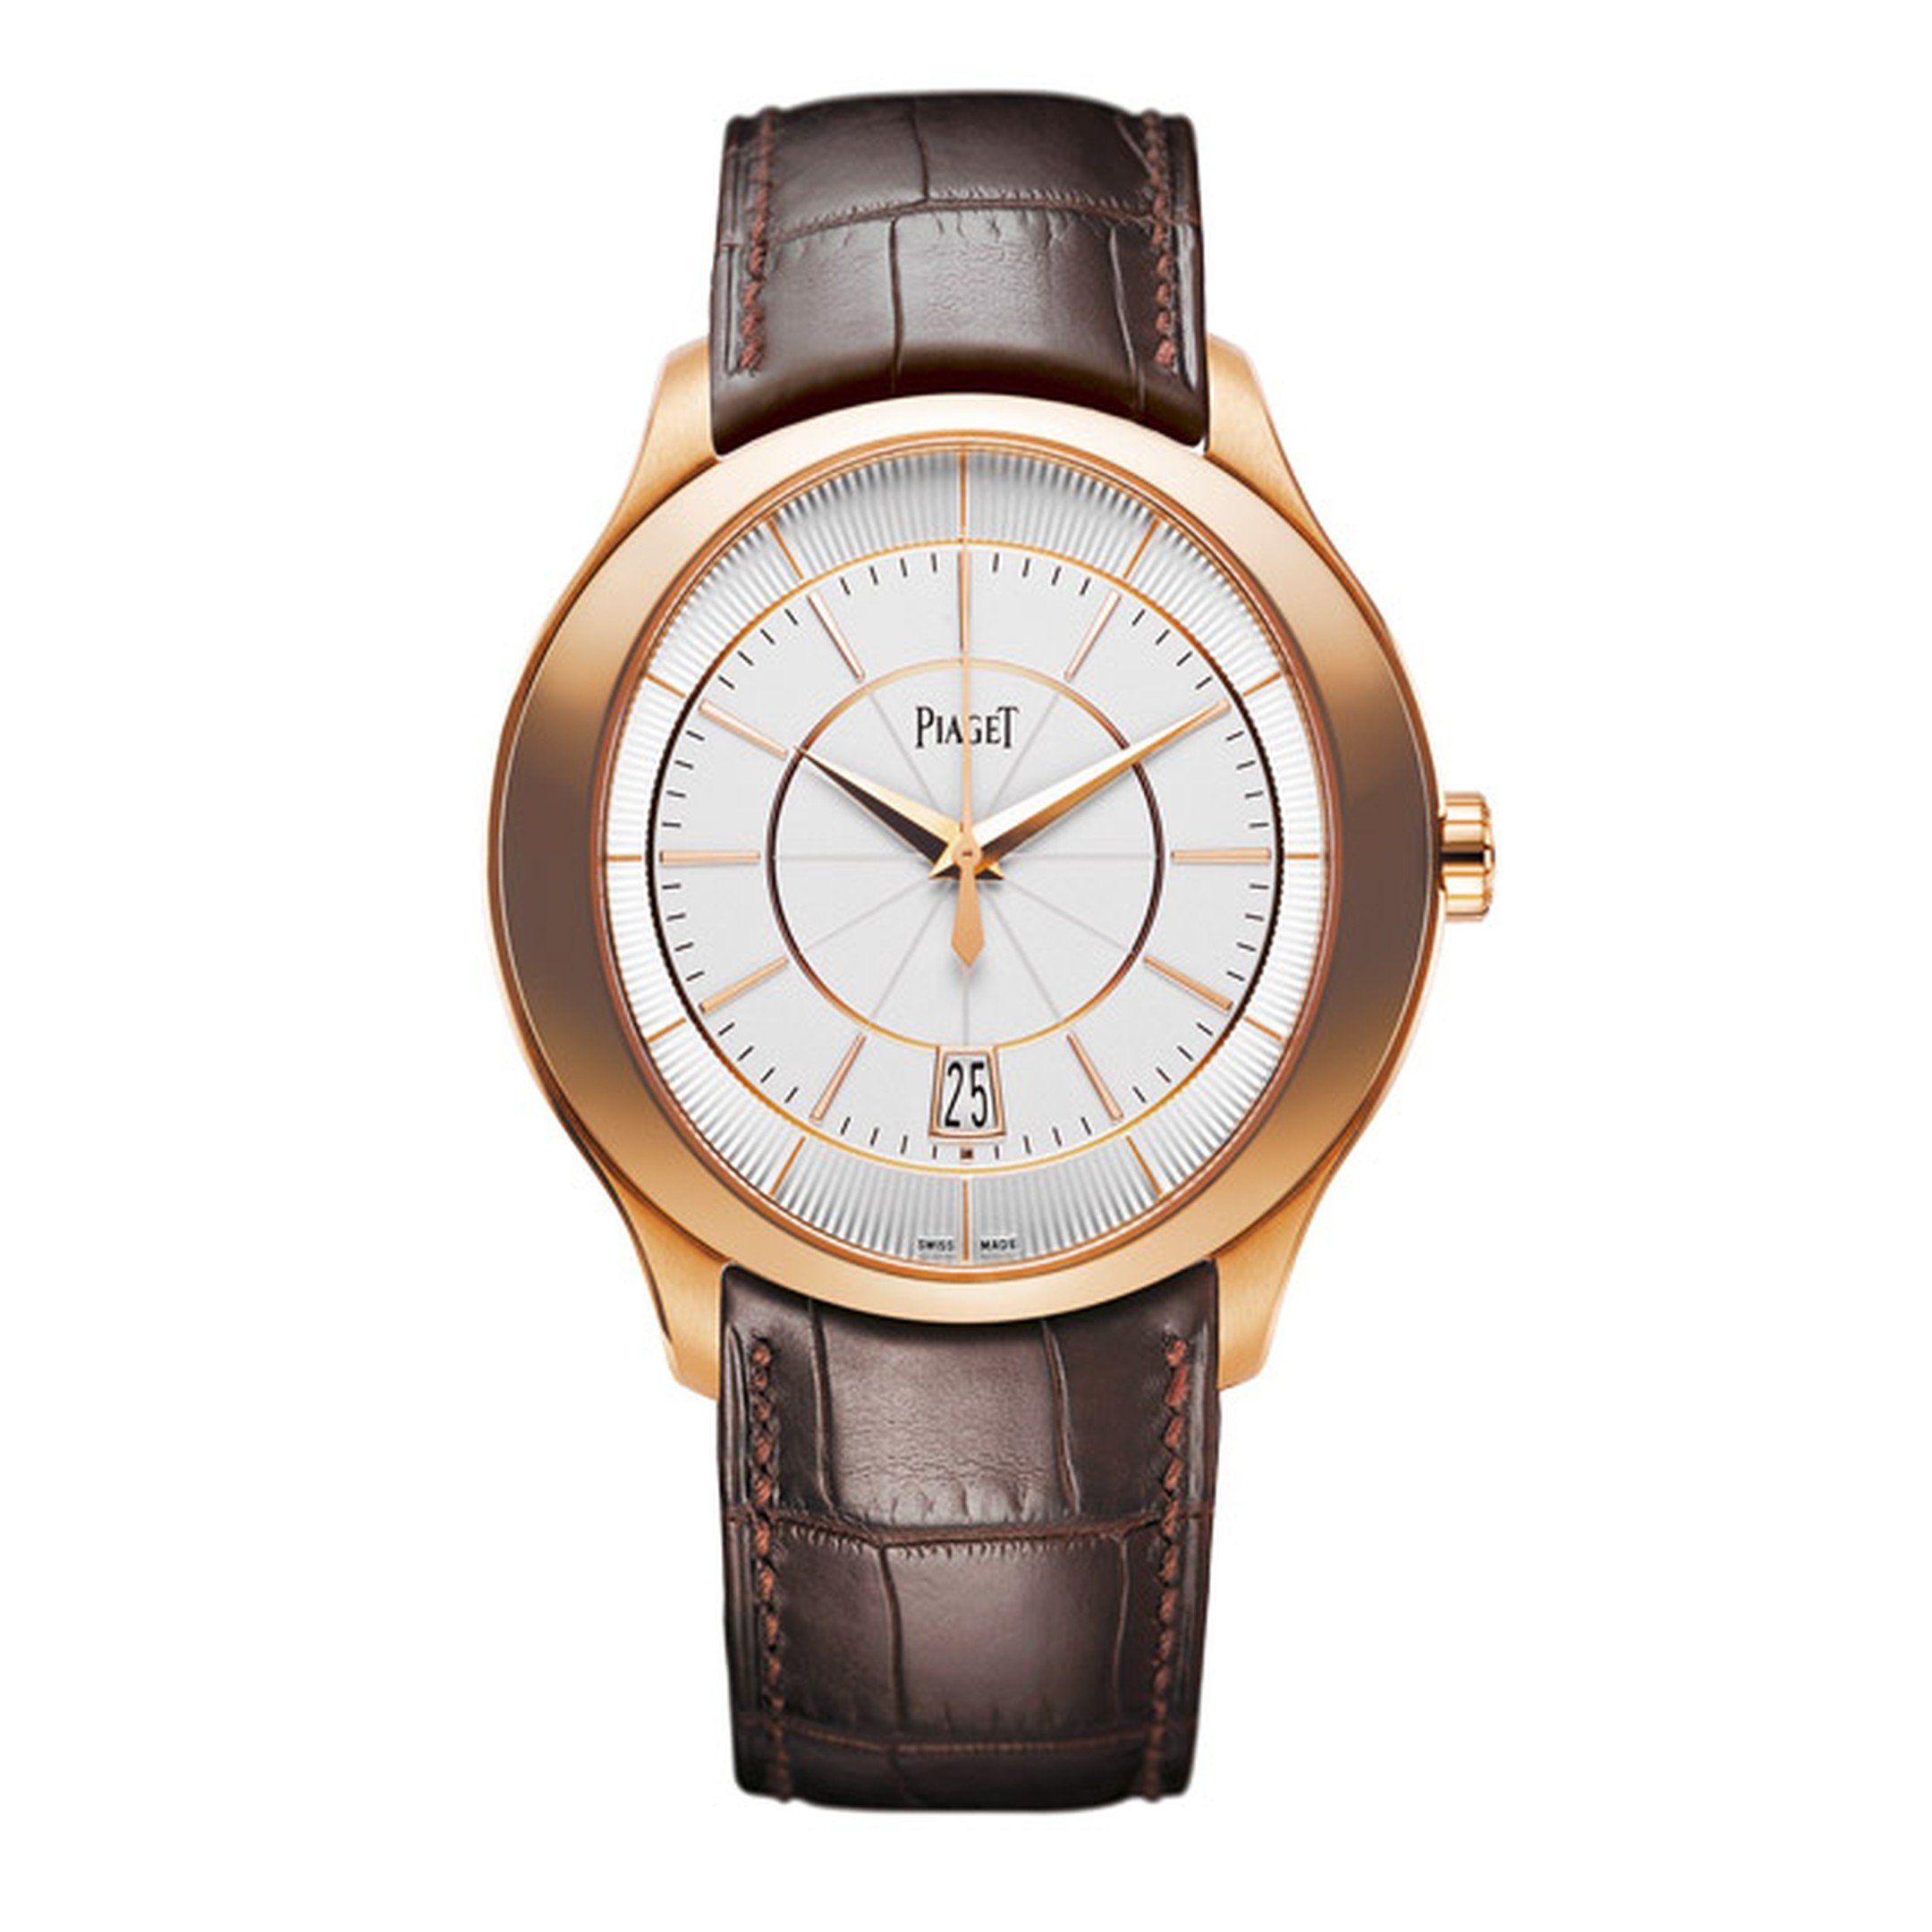 Piaget-Governeur-Watch-Main